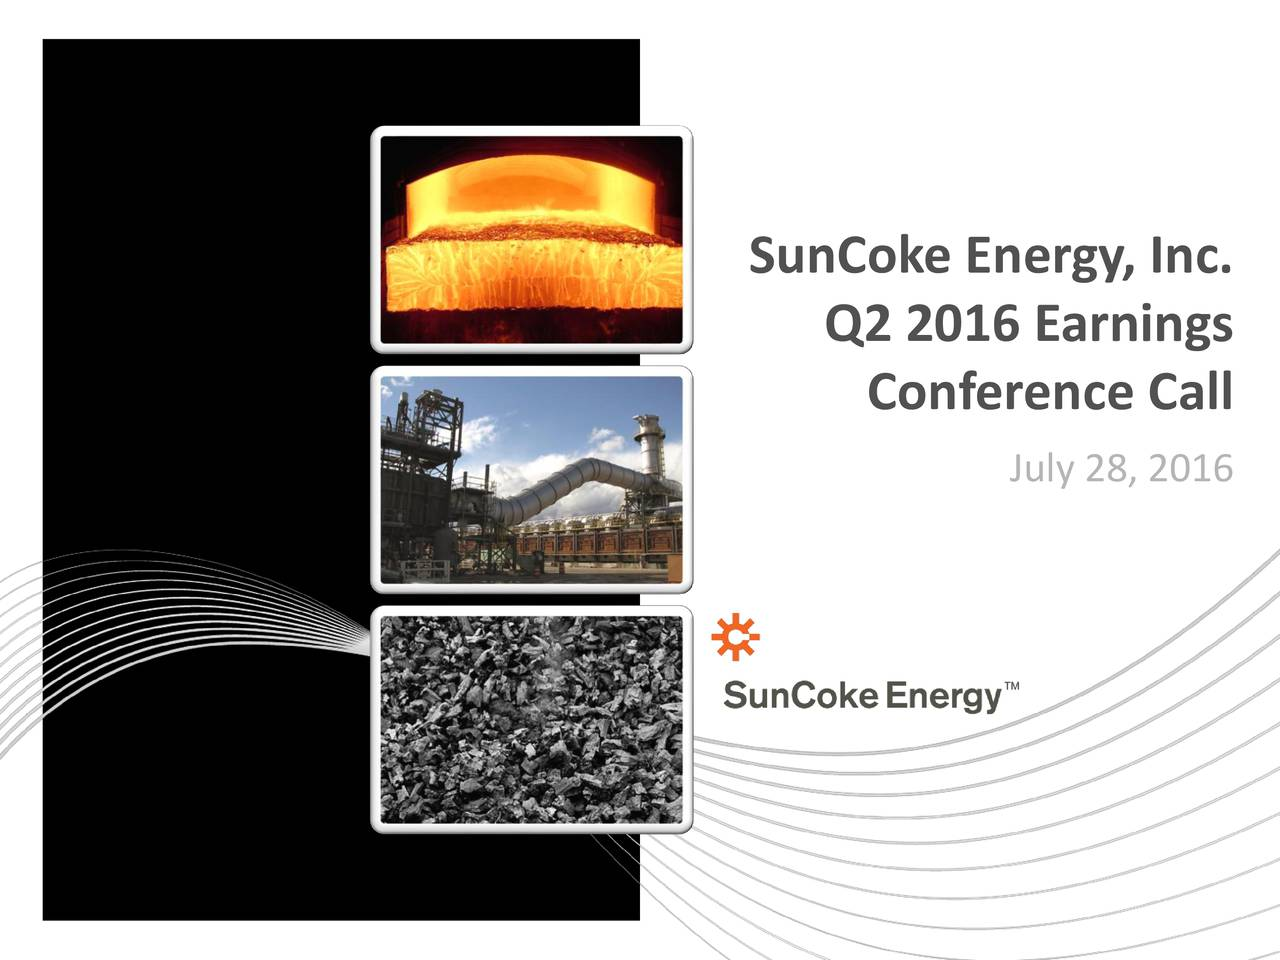 Q2 2016 Earnings Conference Call July 28, 2016